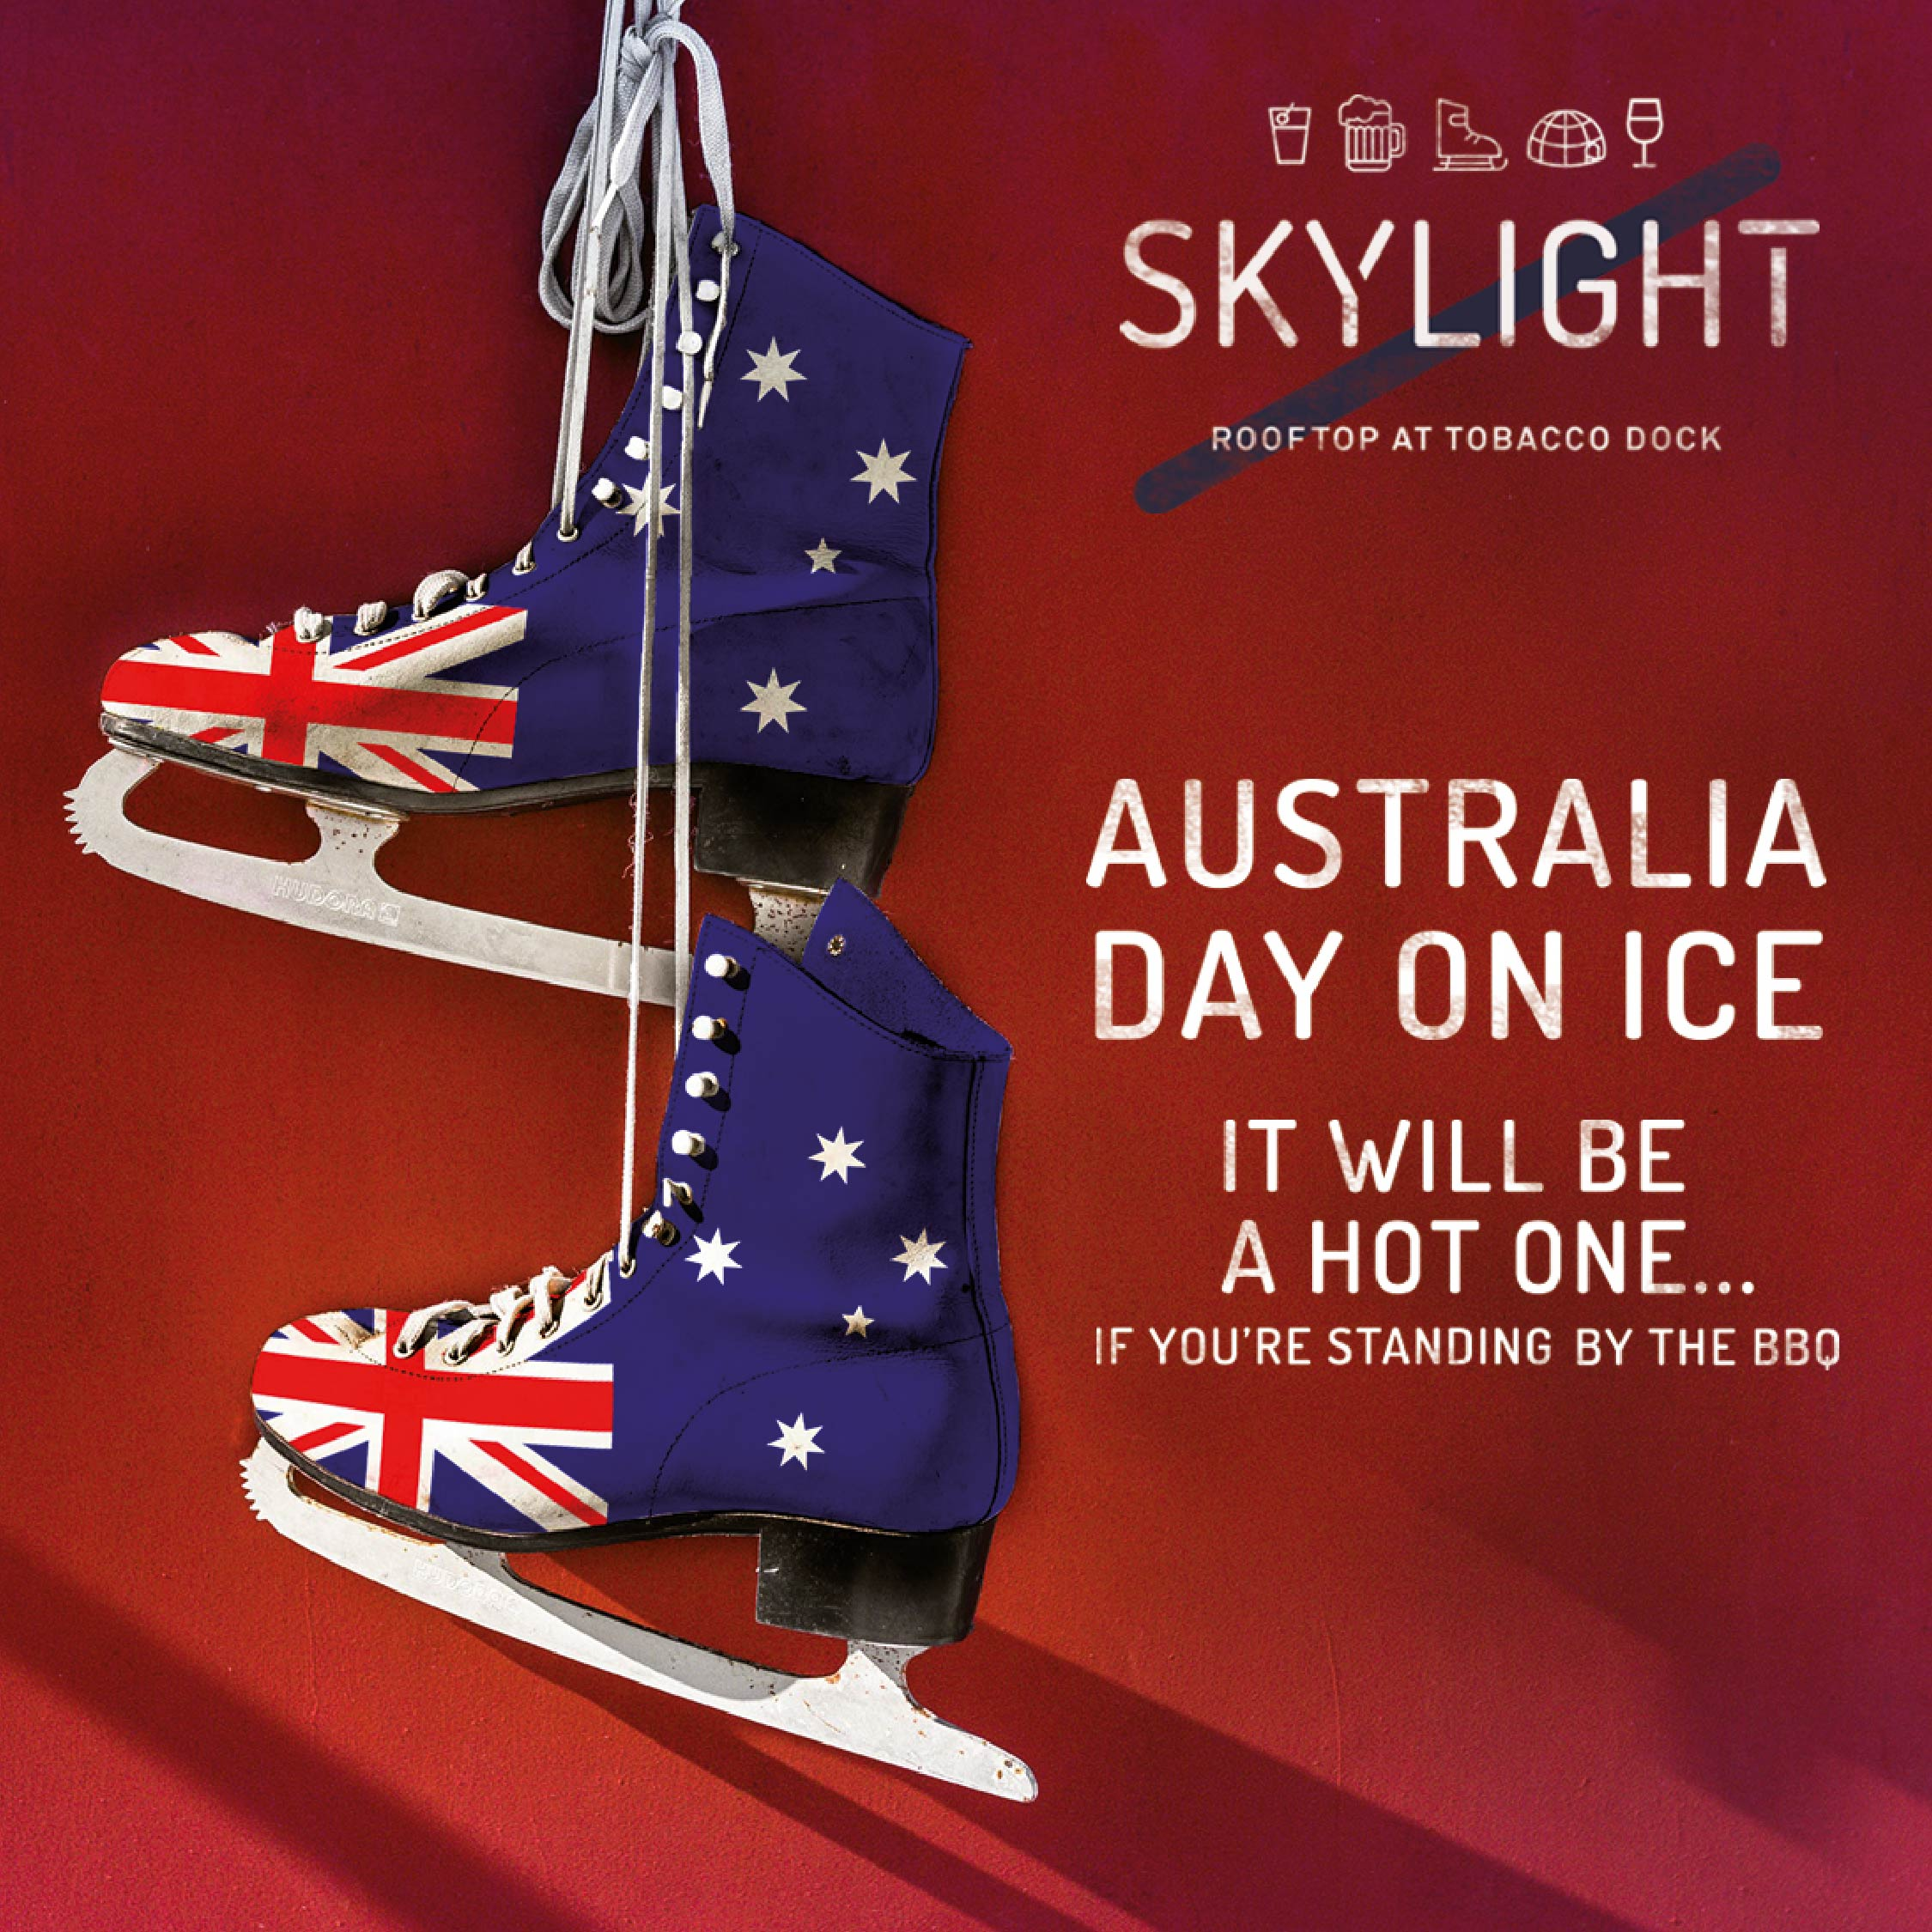 Australia Day On Ice